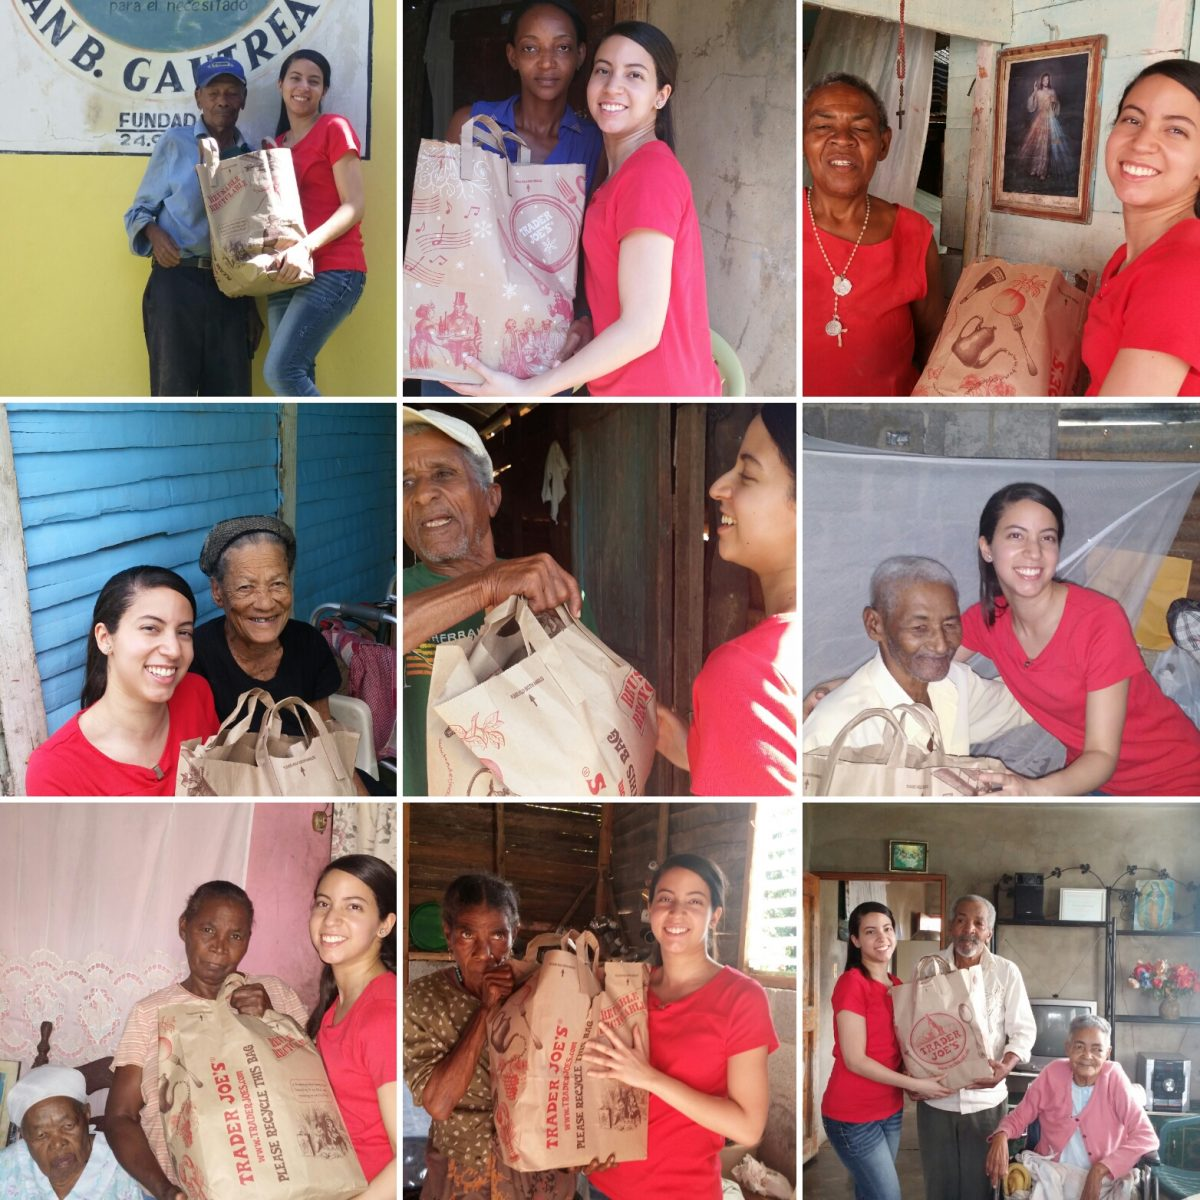 From Pace to Peralvillo: Rohana Sosa helps communities in the Dominican Republic